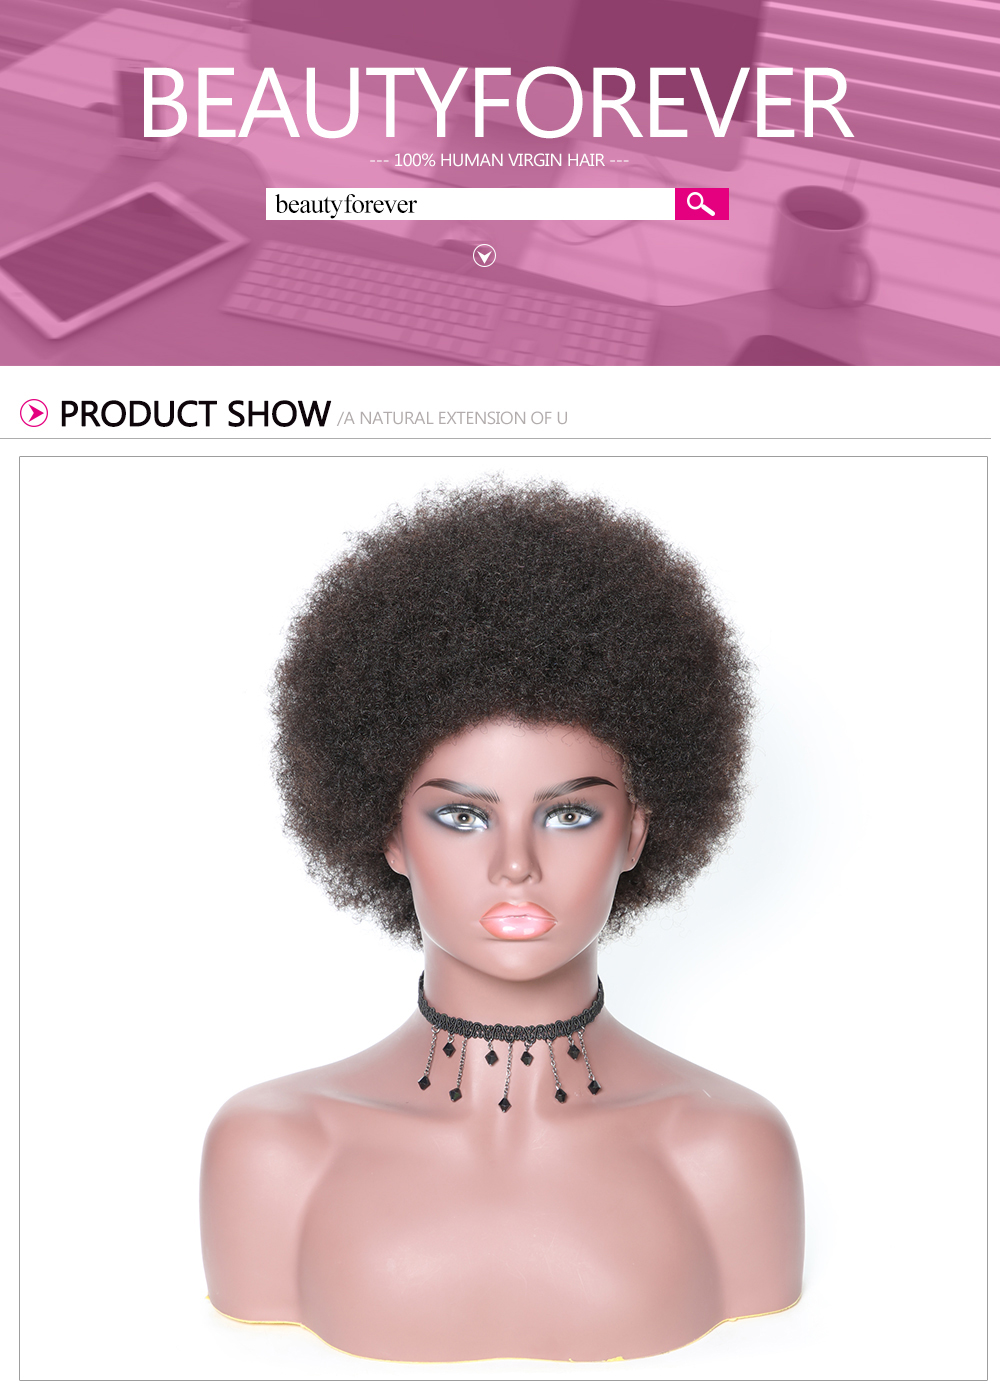 Beautyforever Lace Front Short Human Hair Curly Afro Wigs On Sale